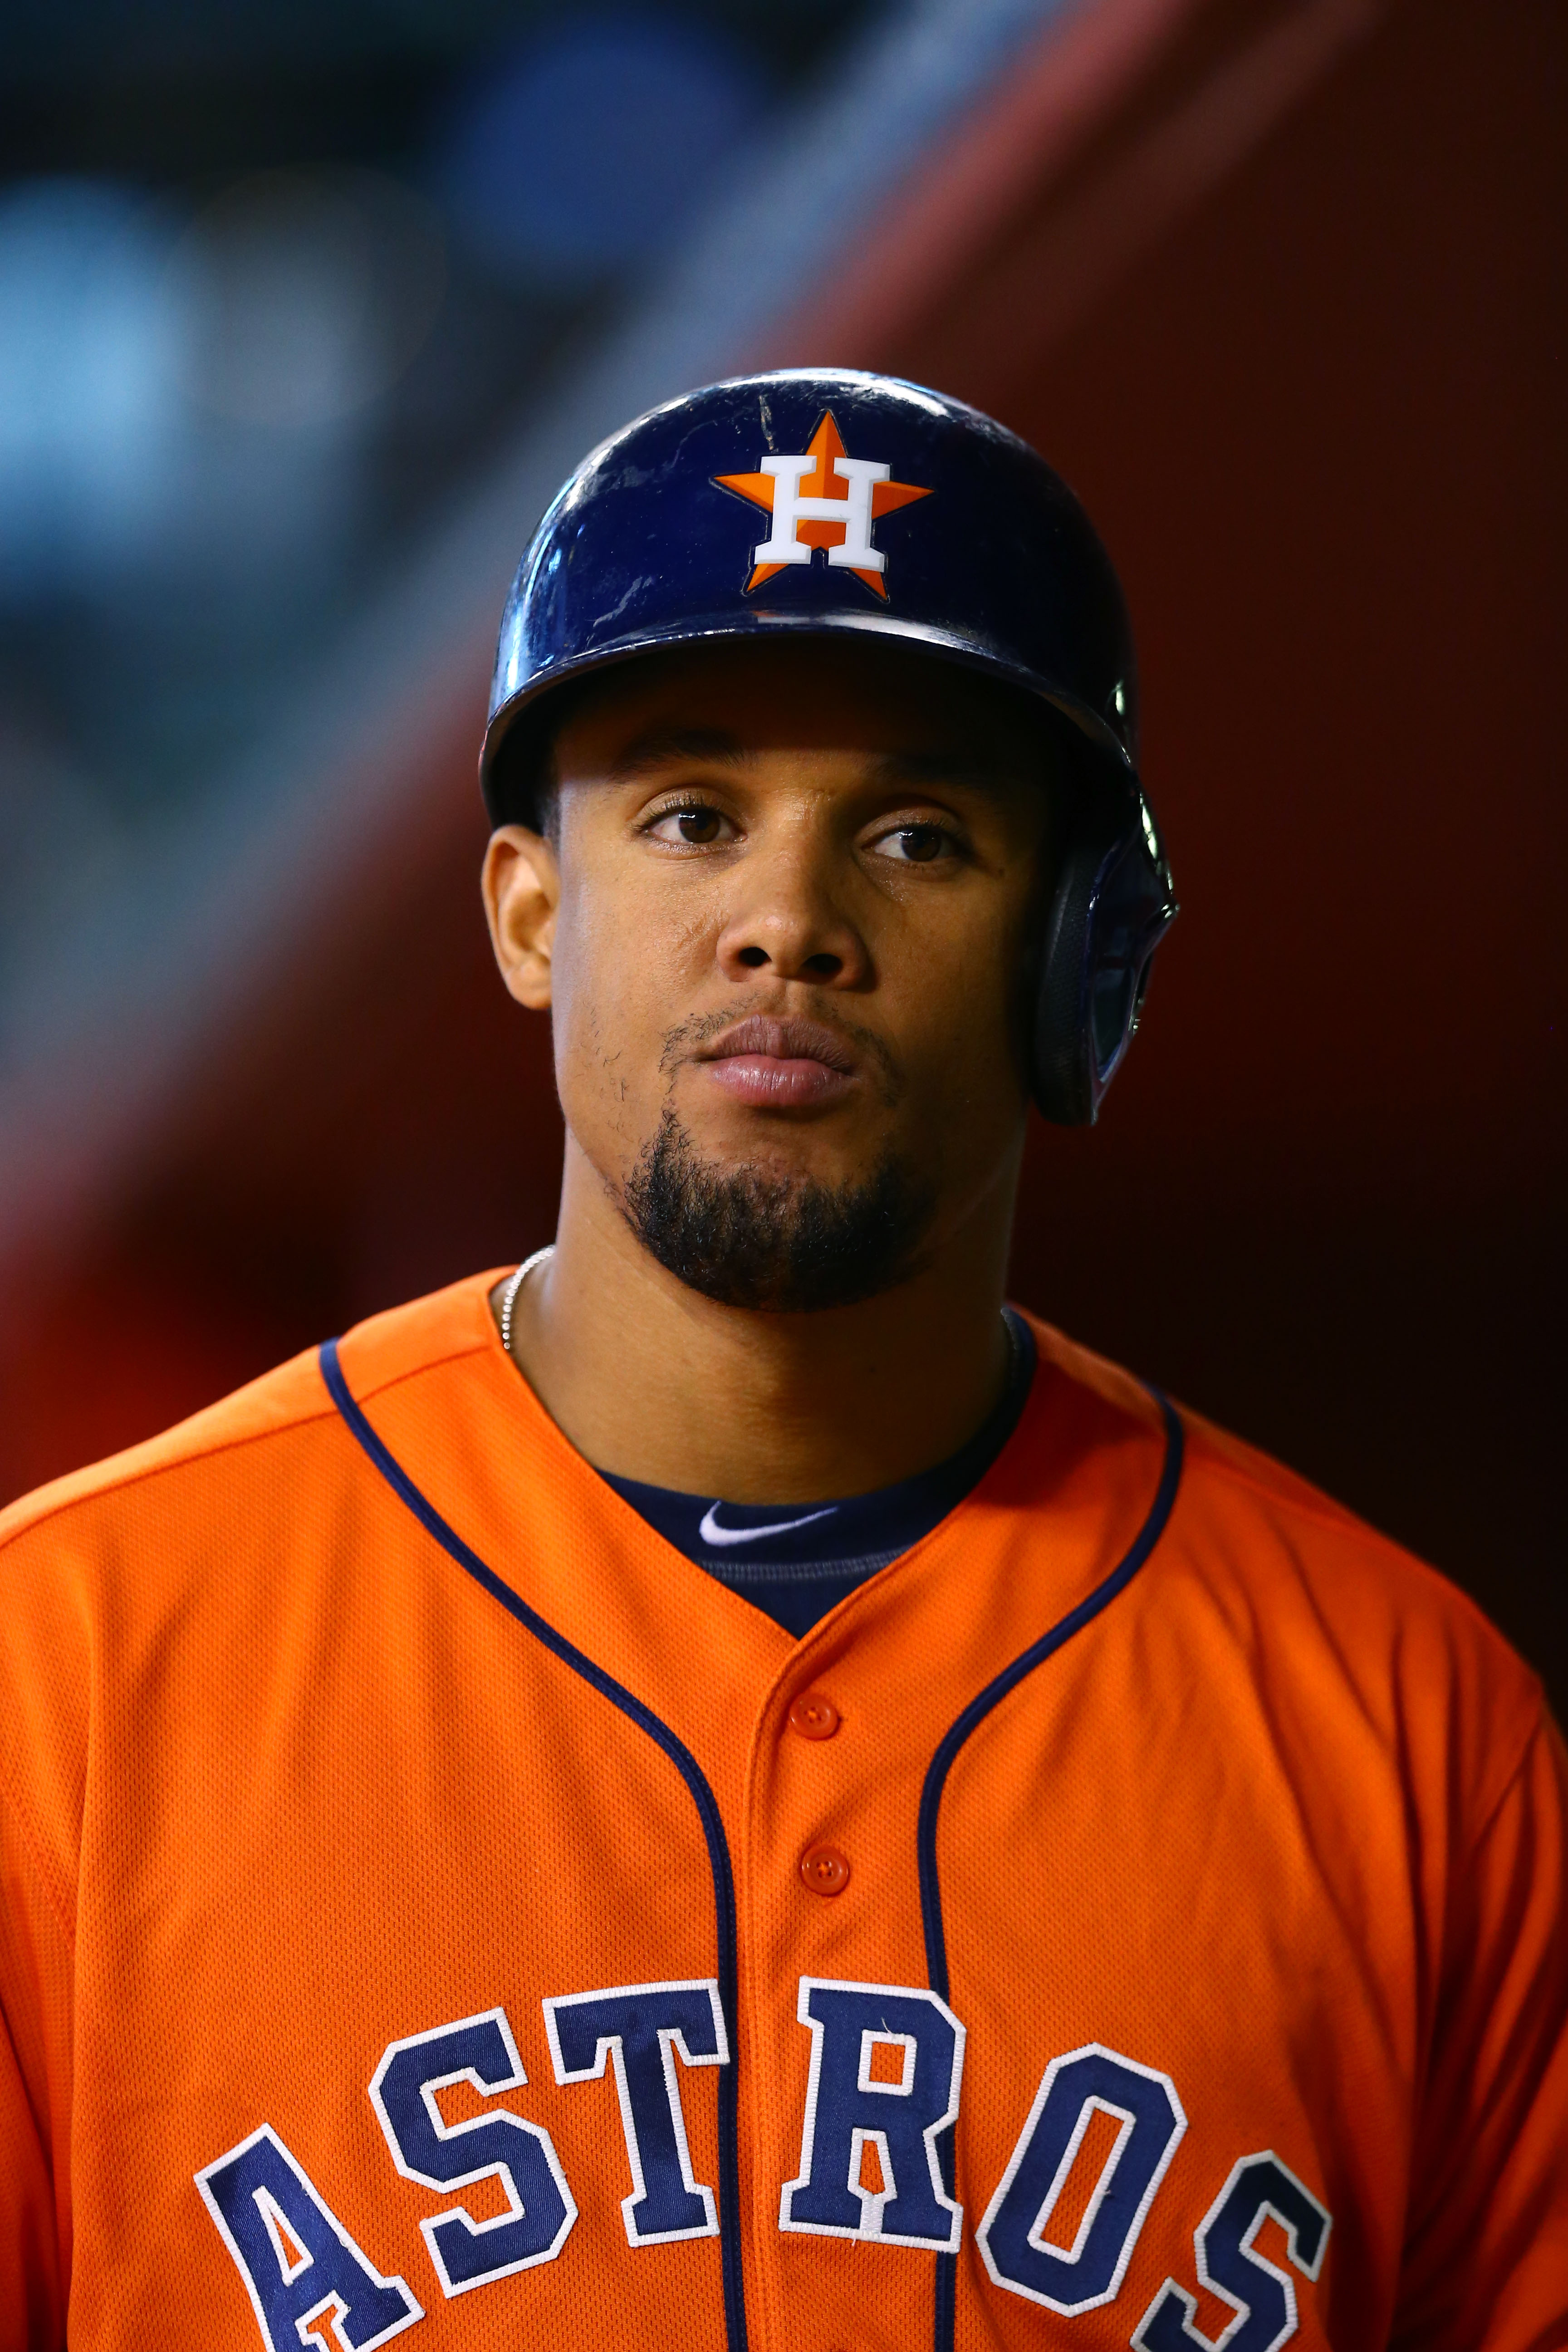 Astros Request Release Waivers On Carlos Gomez - MLB Trade ...